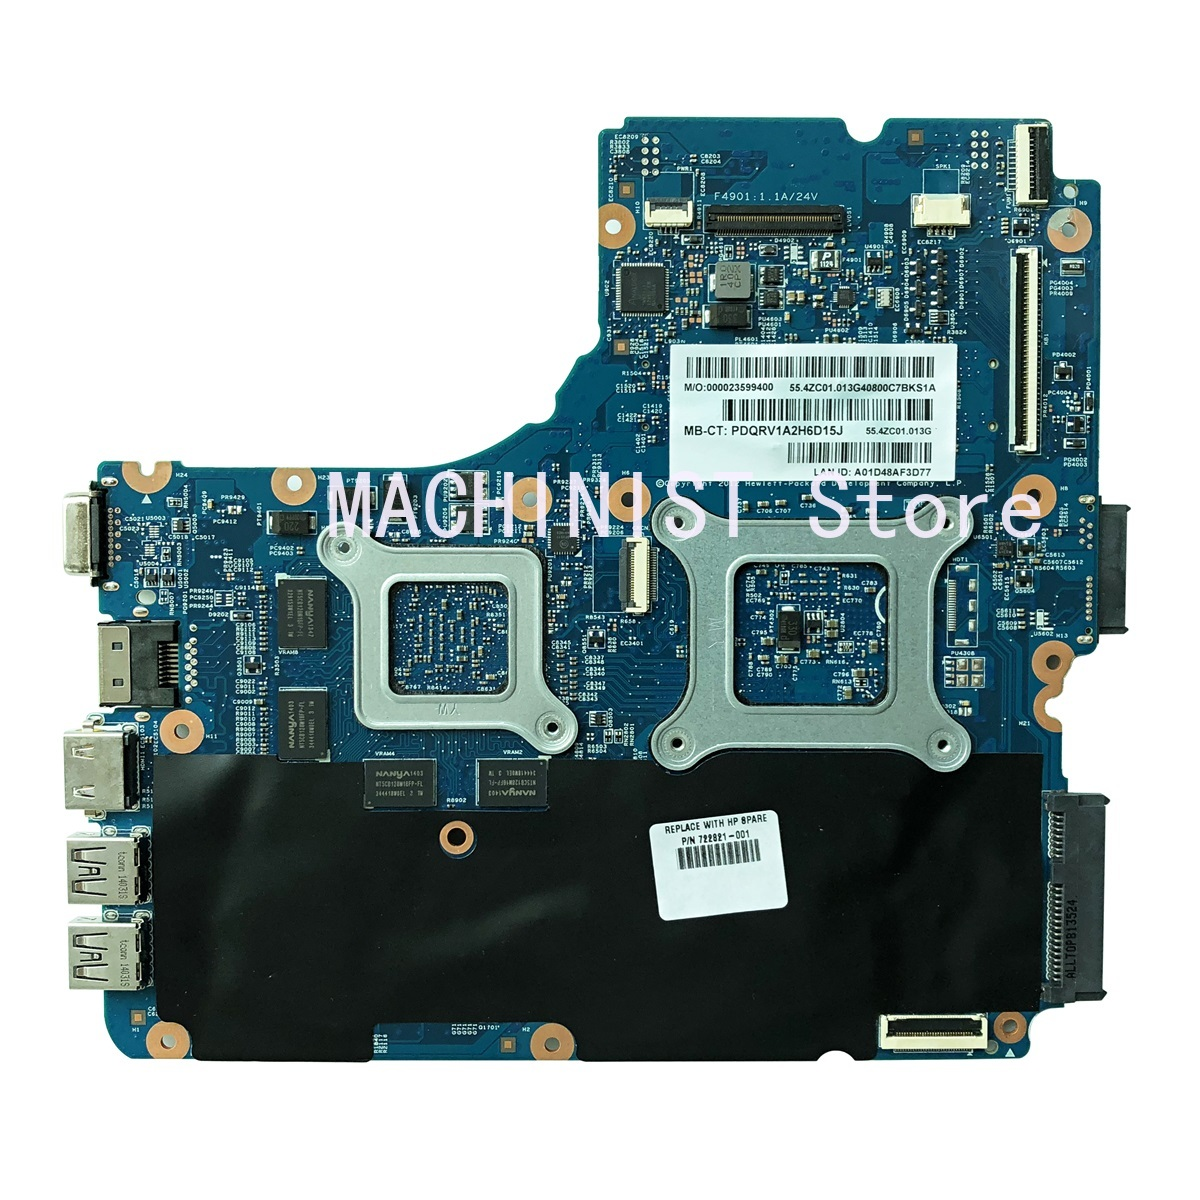 445 G1 Laptop Motherboard For HP 455 G1 455-G1 445-G1 motherboard 48.4ZCW03.011 12240-1 722821-001 722821-501 722821-601 1